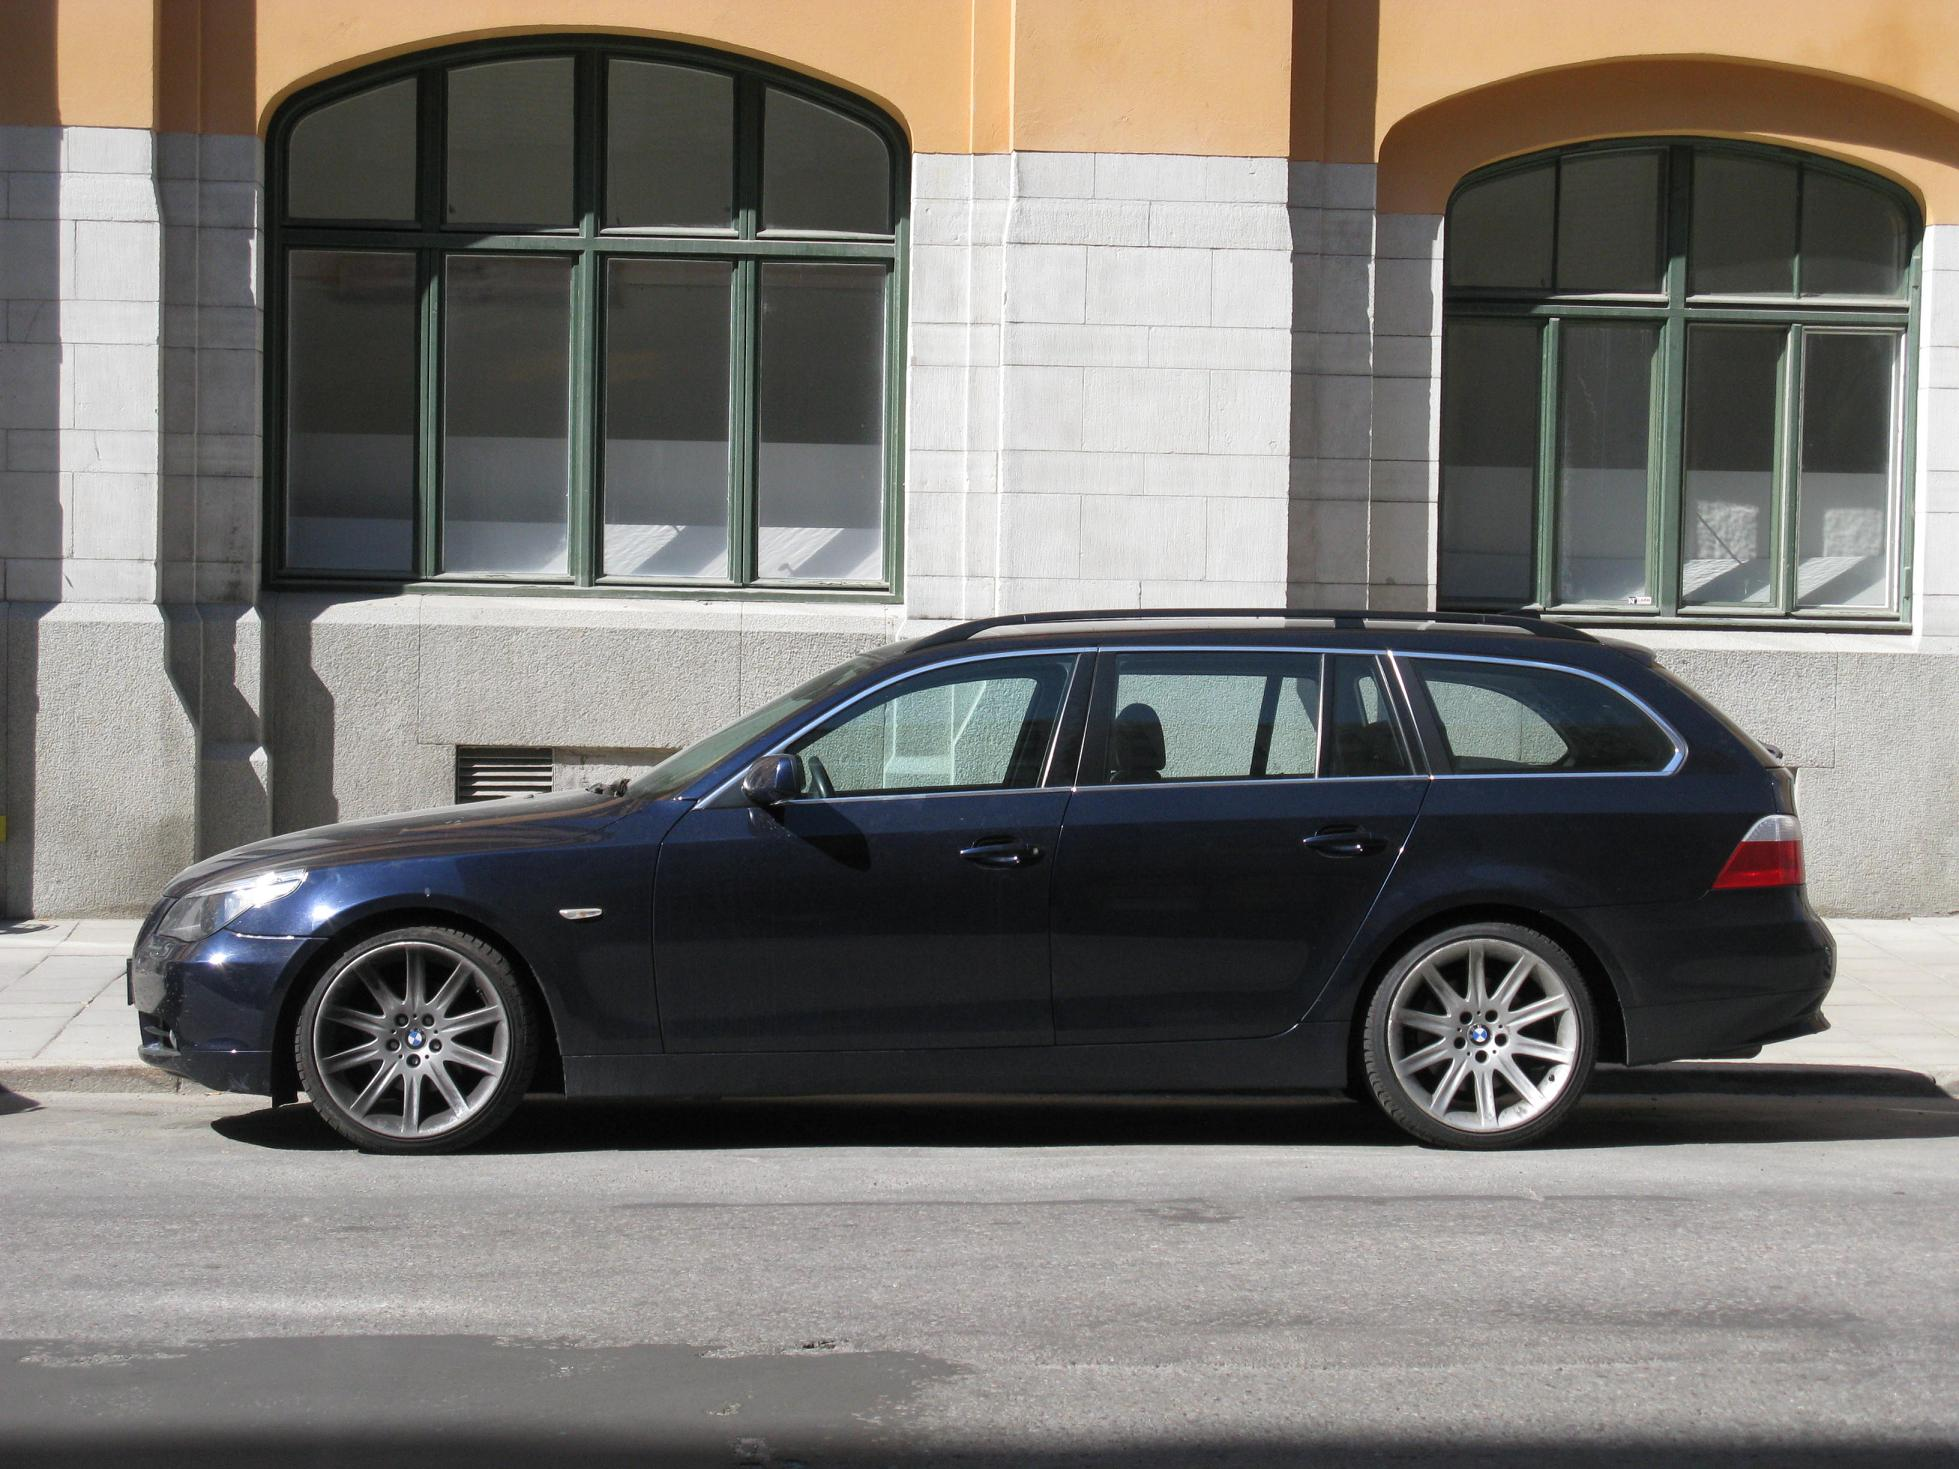 BMW 535d Touring | Flickr - Photo Sharing!